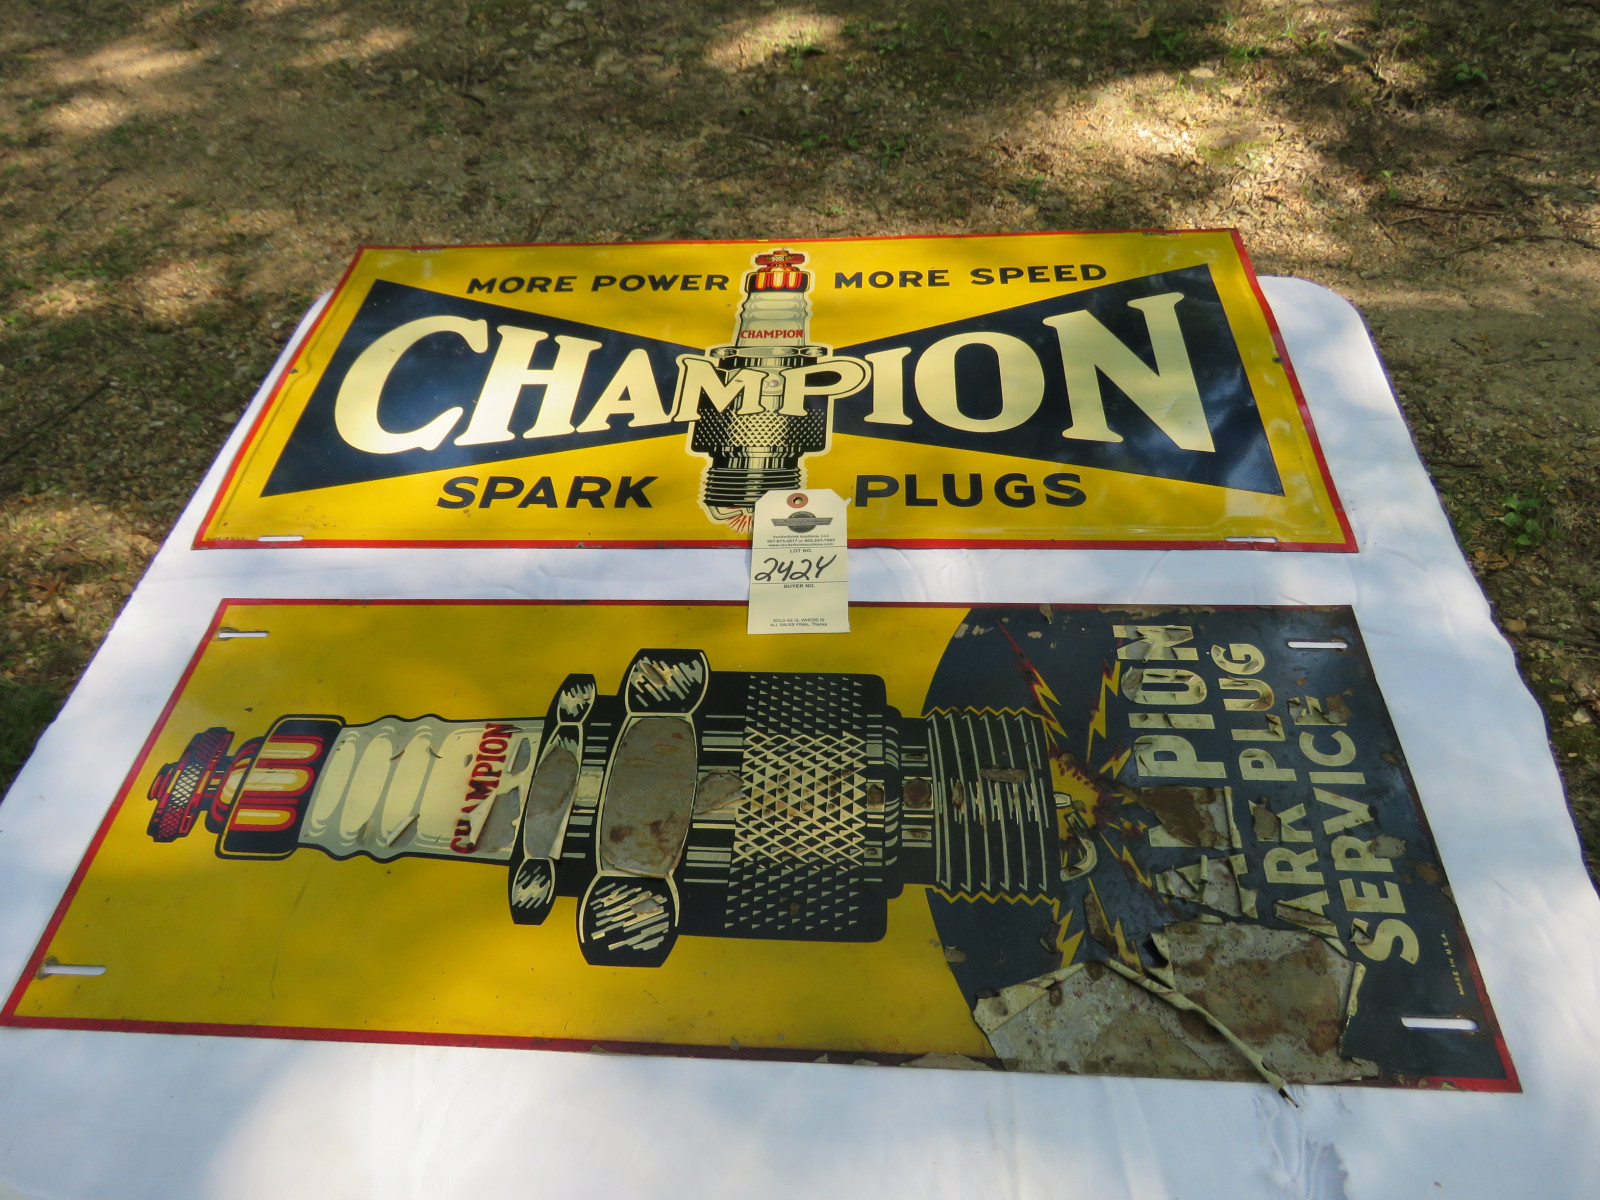 Champion Spark Plugs Painted Tin Sign Group 12x26 inches - Image 1